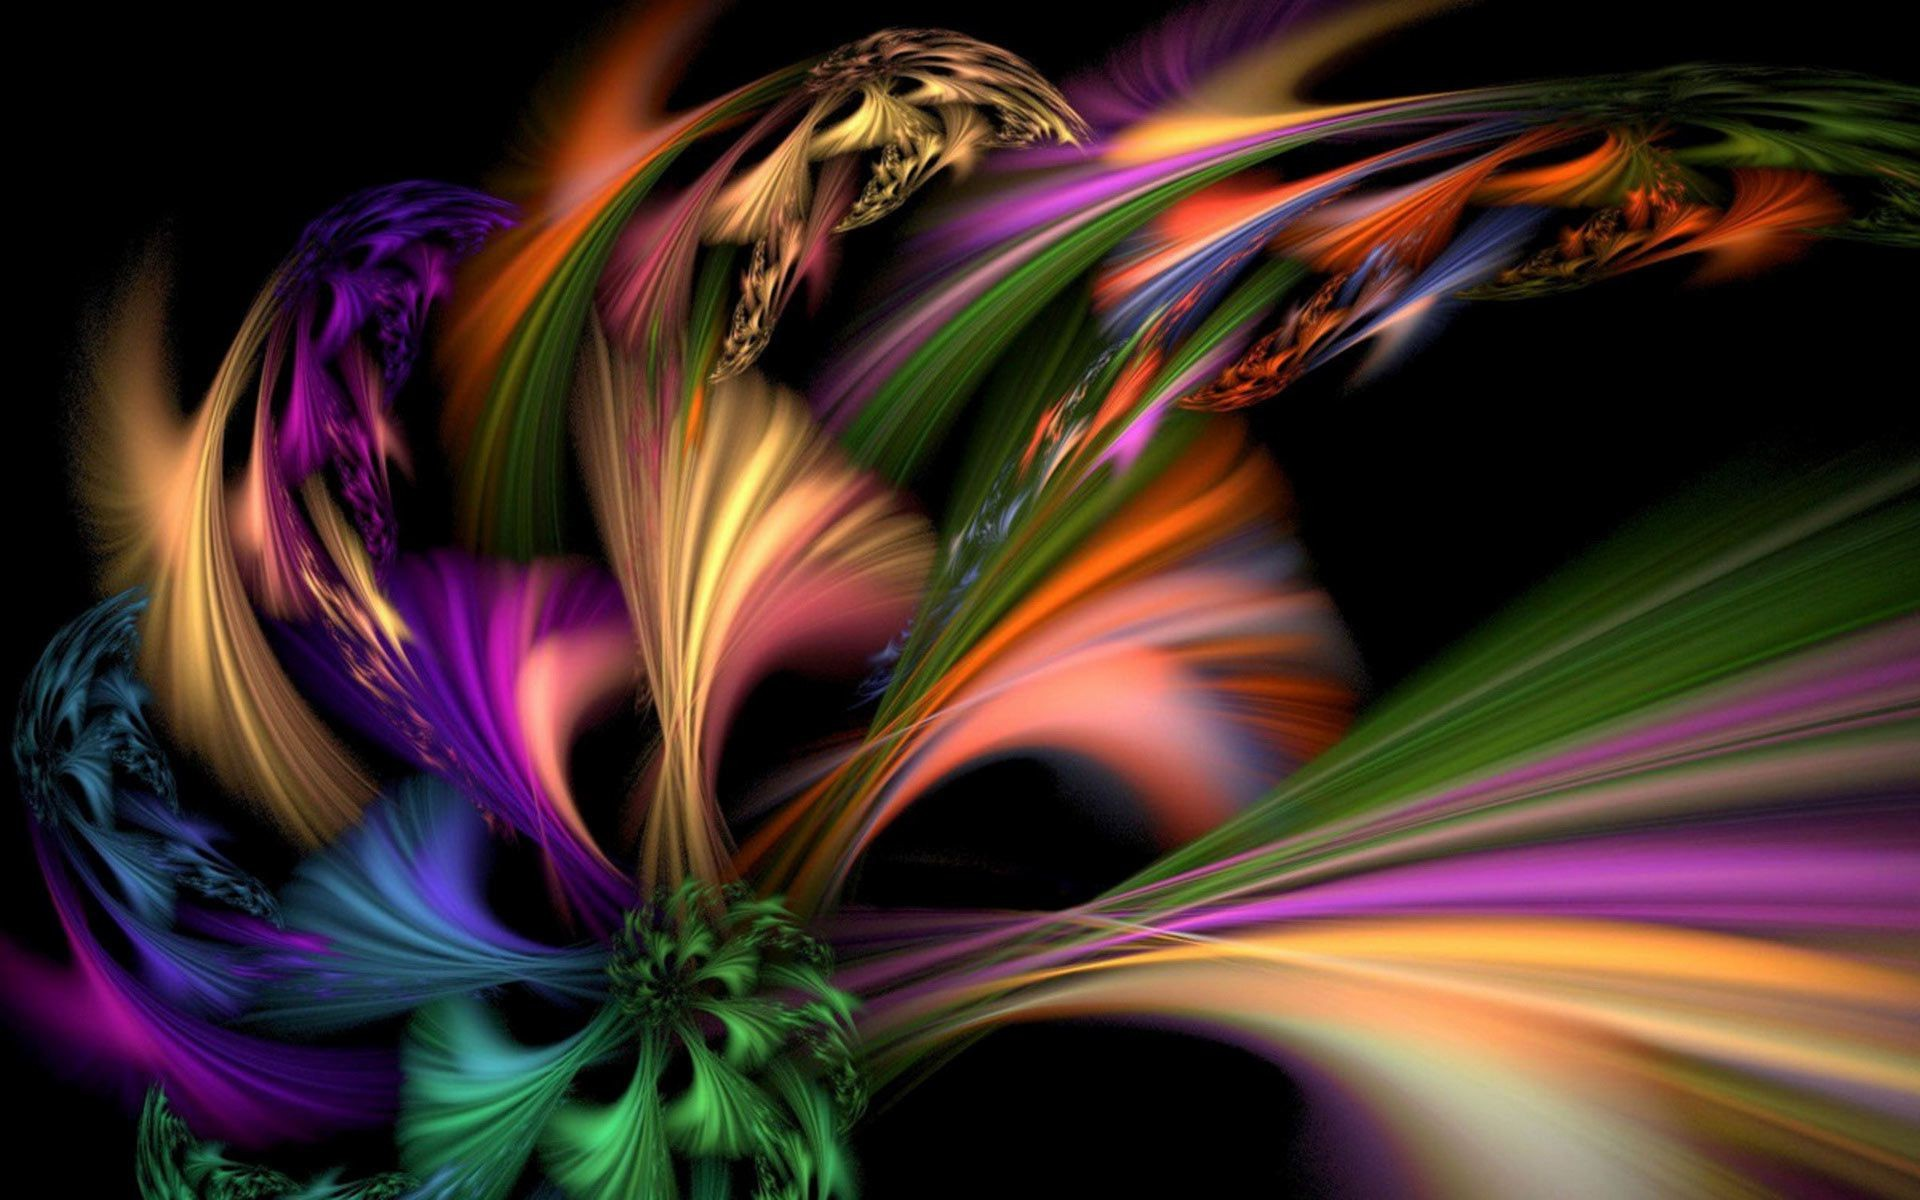 macro abstract fractal curve surreal art graphic fantasy flame dynamic motion blur illustration color fantastic line design wallpaper texture bright